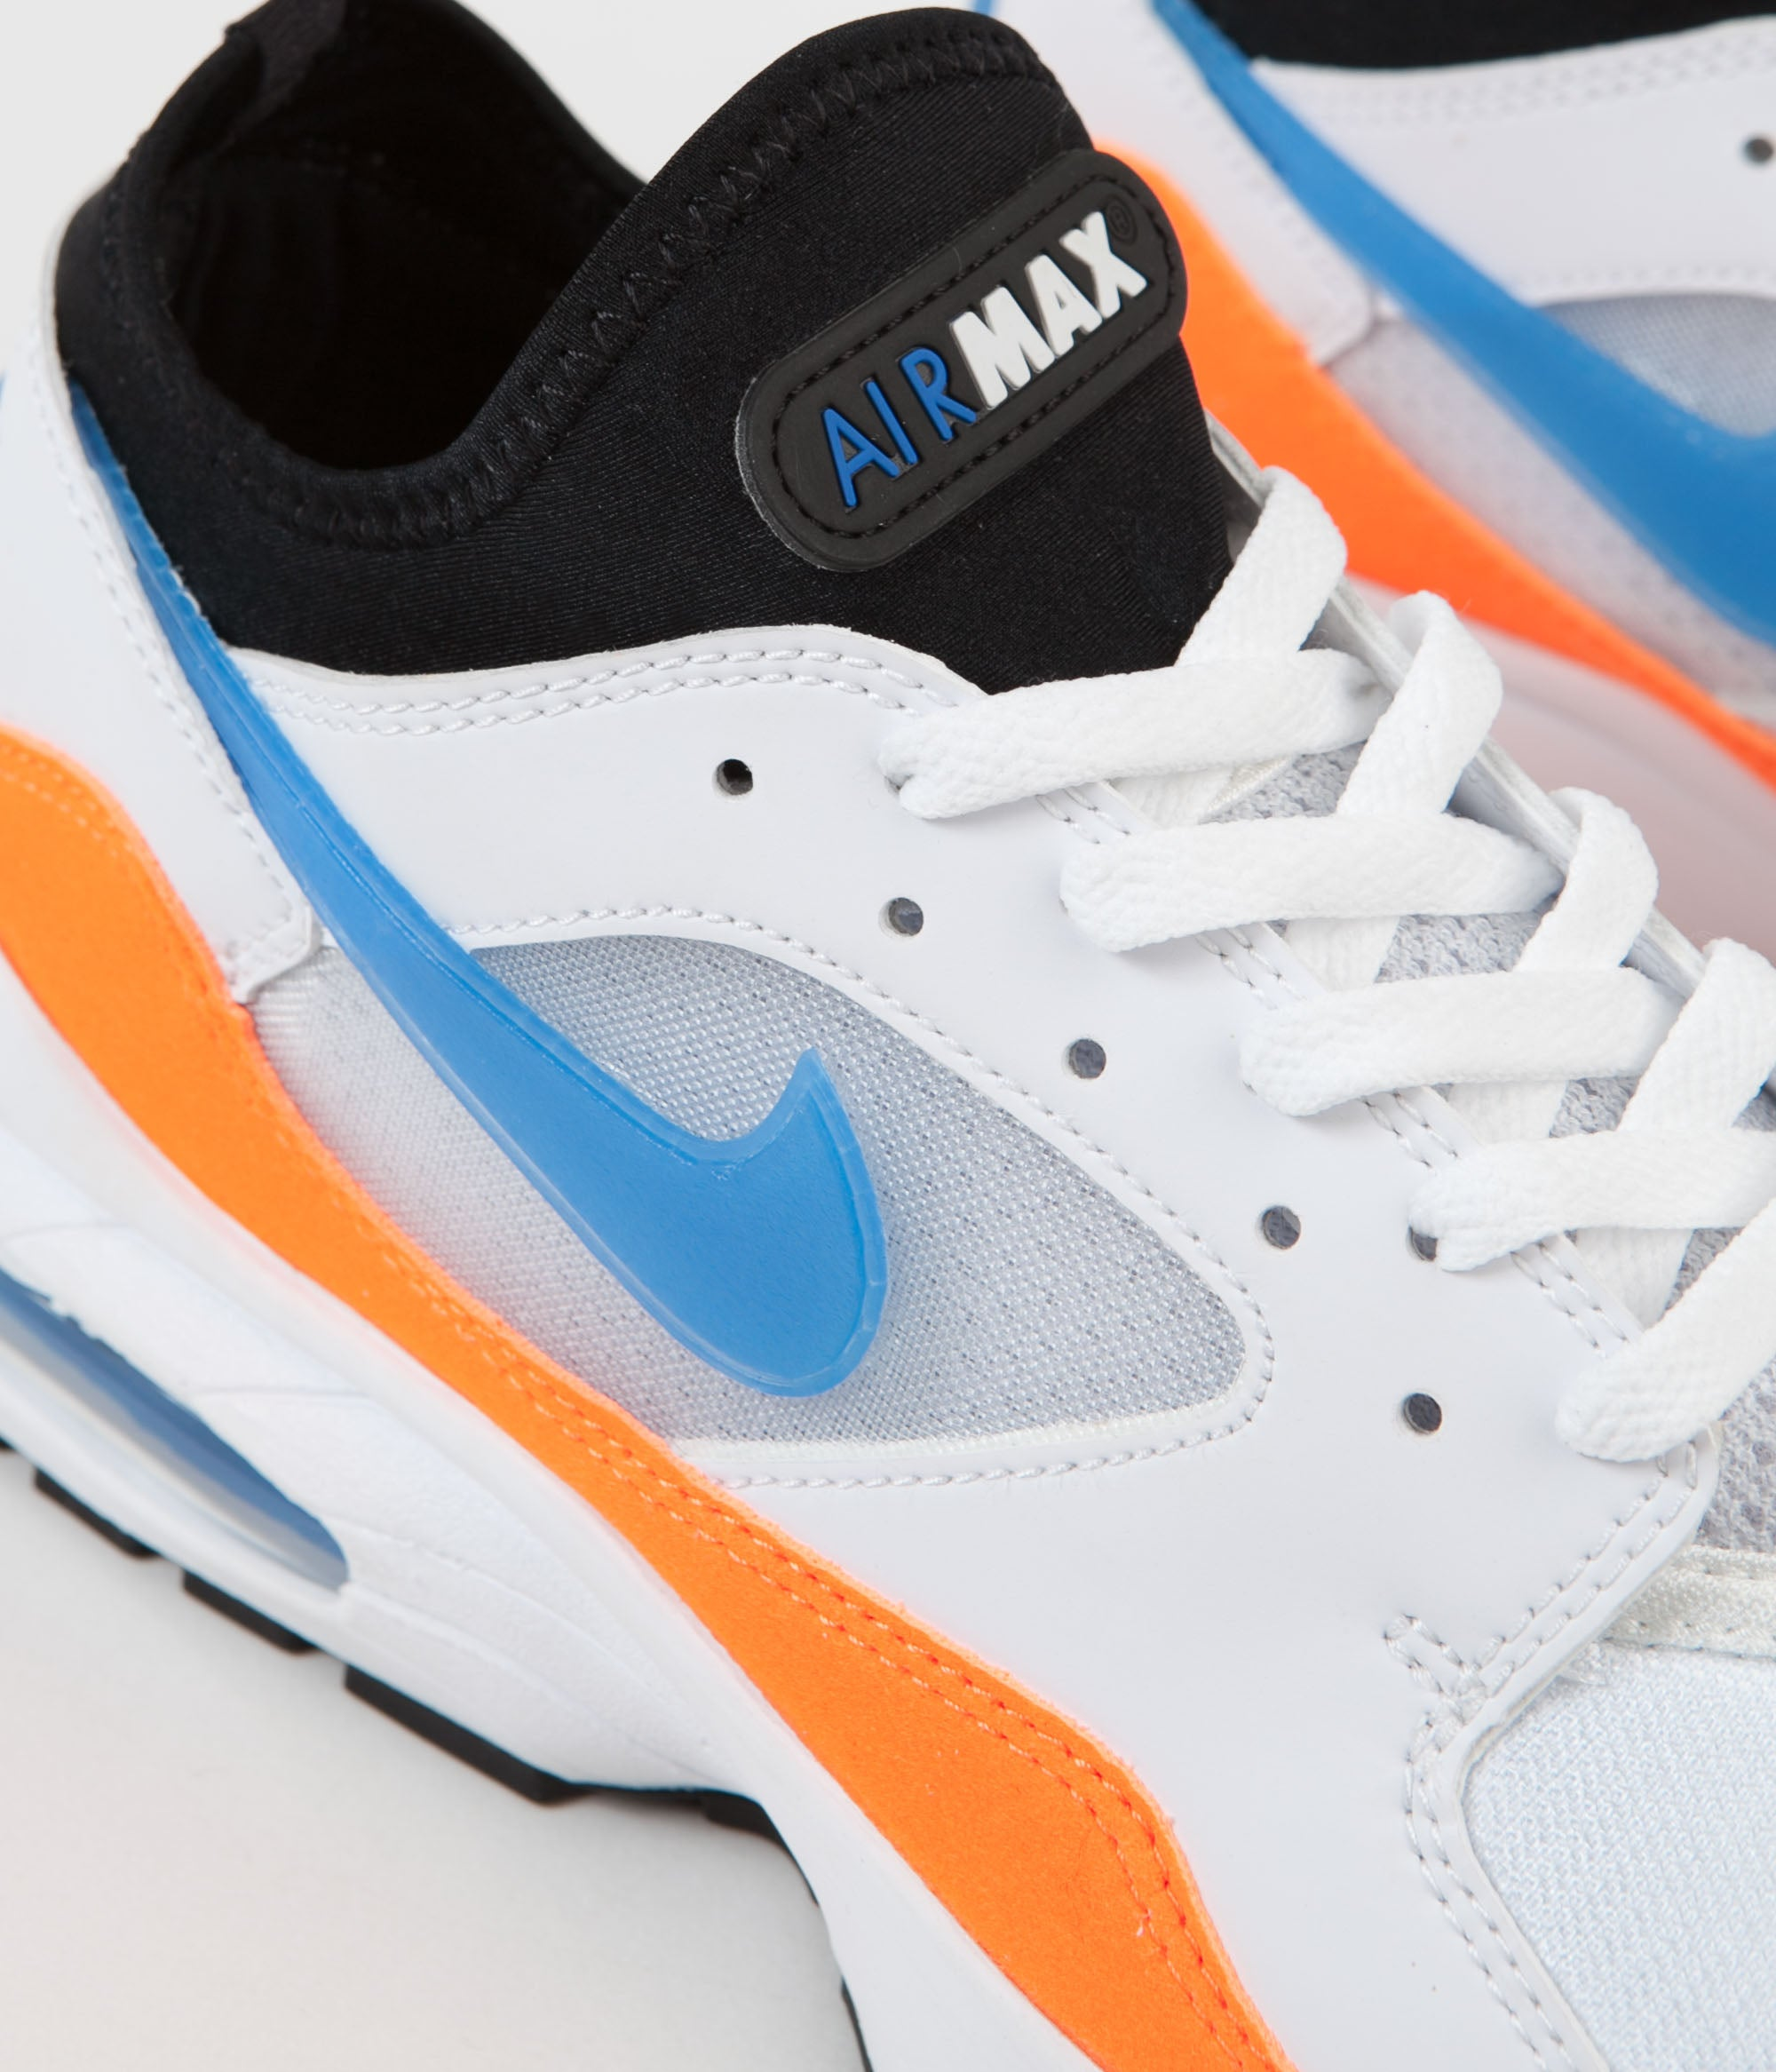 3470dc8af688 ... Nike Air Max  93 Shoes - White   Blue Nebula - Total Orange - Black ...